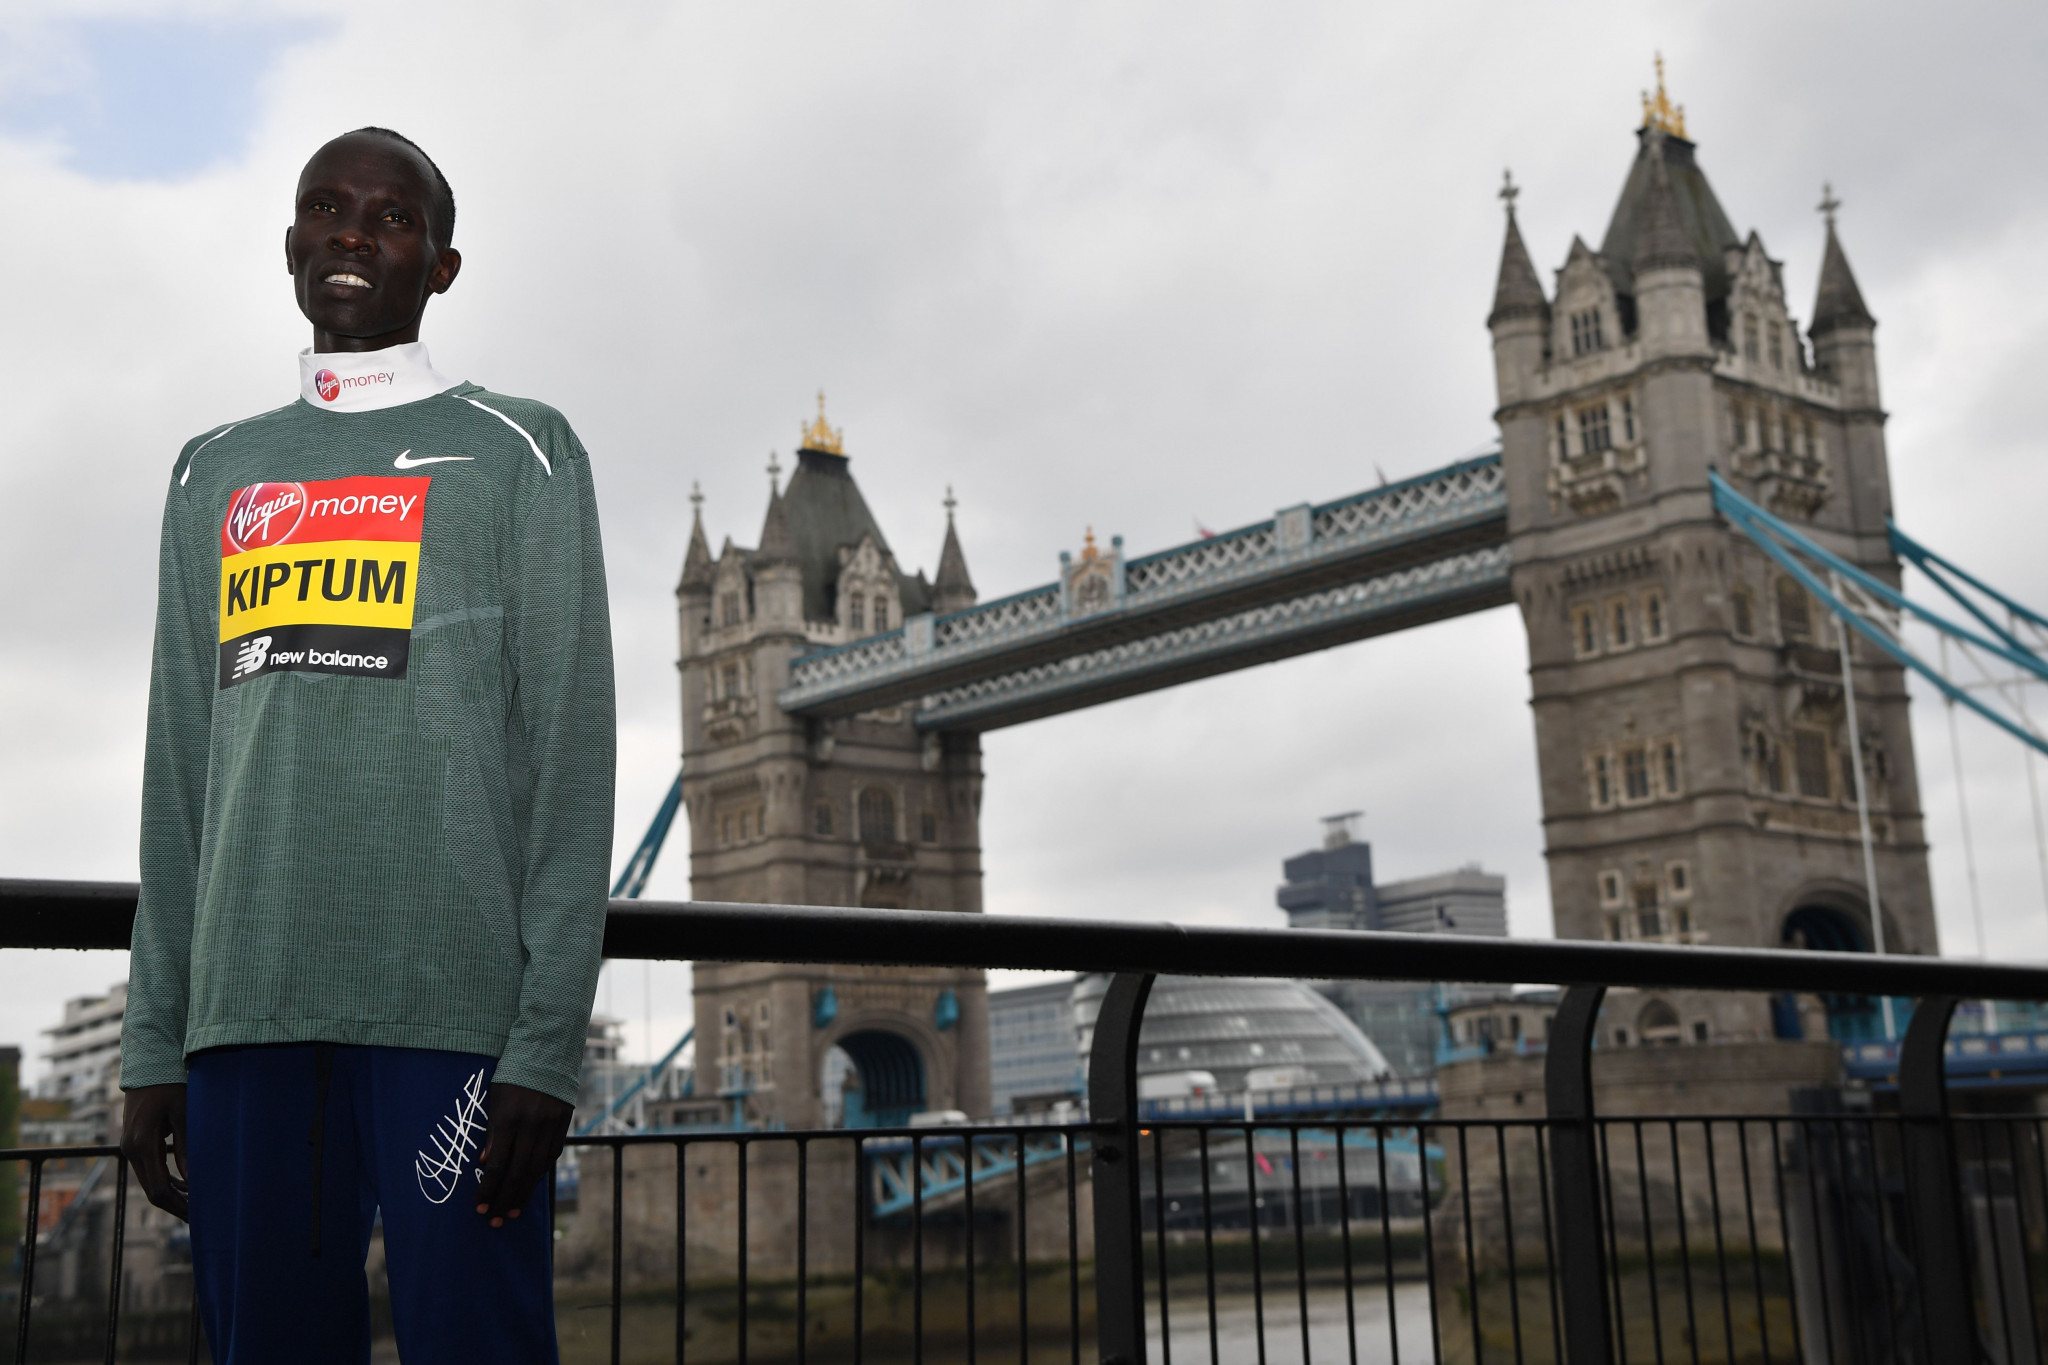 Half-marathon world record holder Kiptum suspended two days before London Marathon